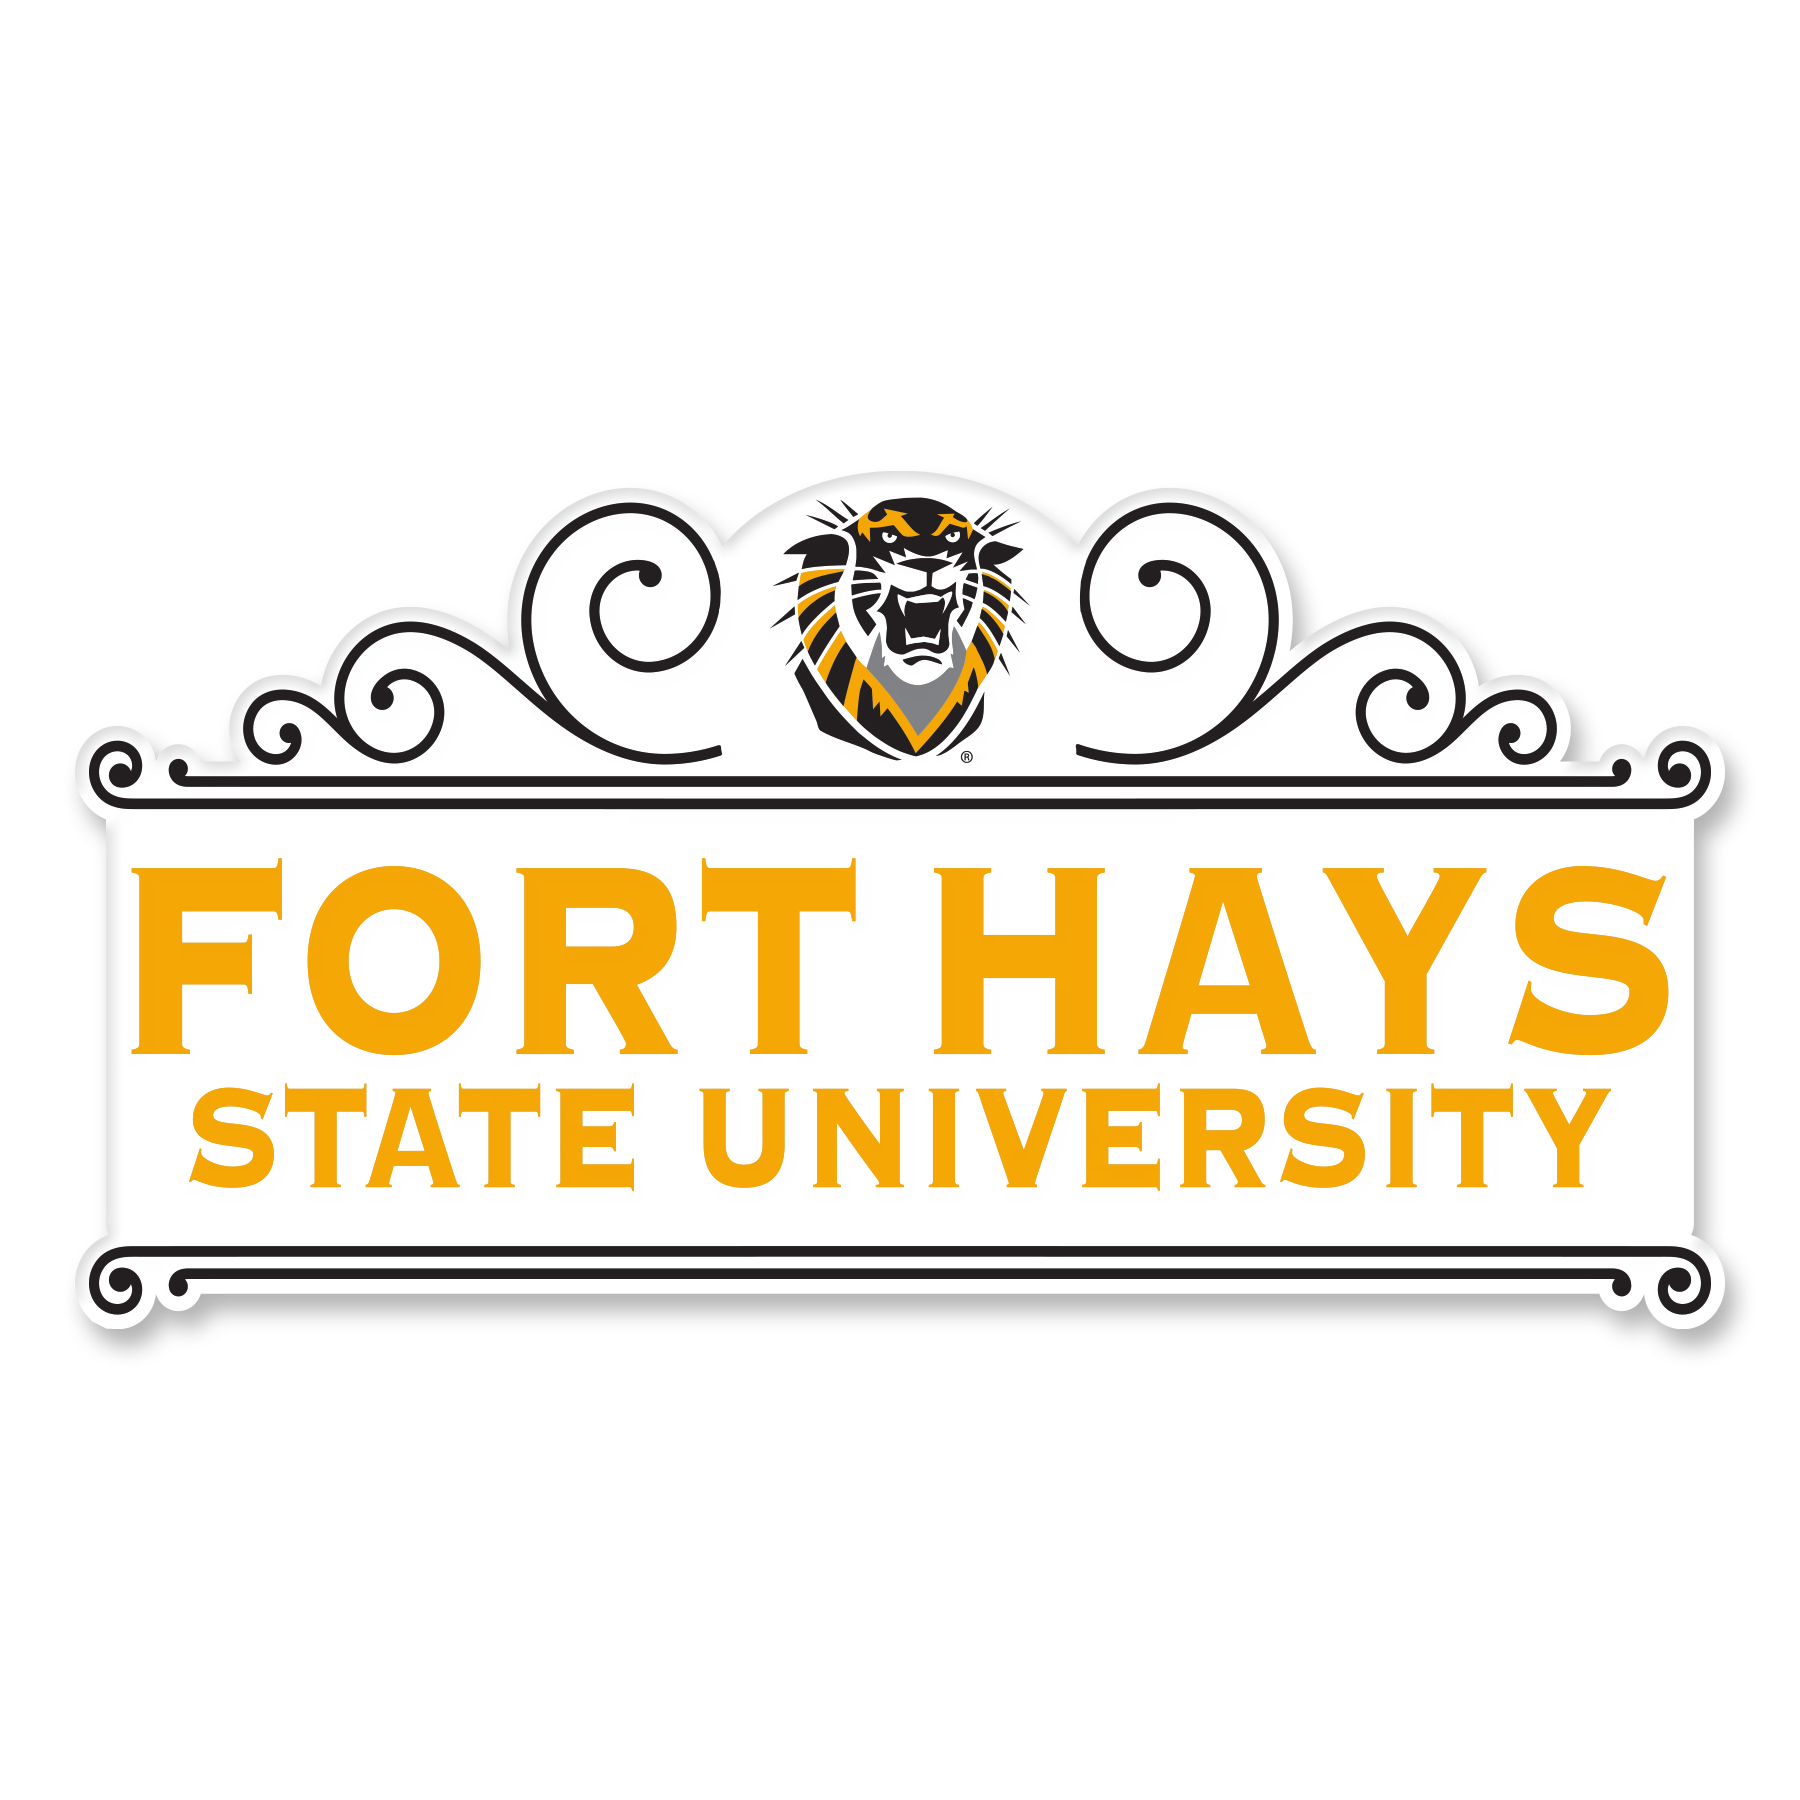 Image for the FHSU Recycled Wood Magnets, Neil product